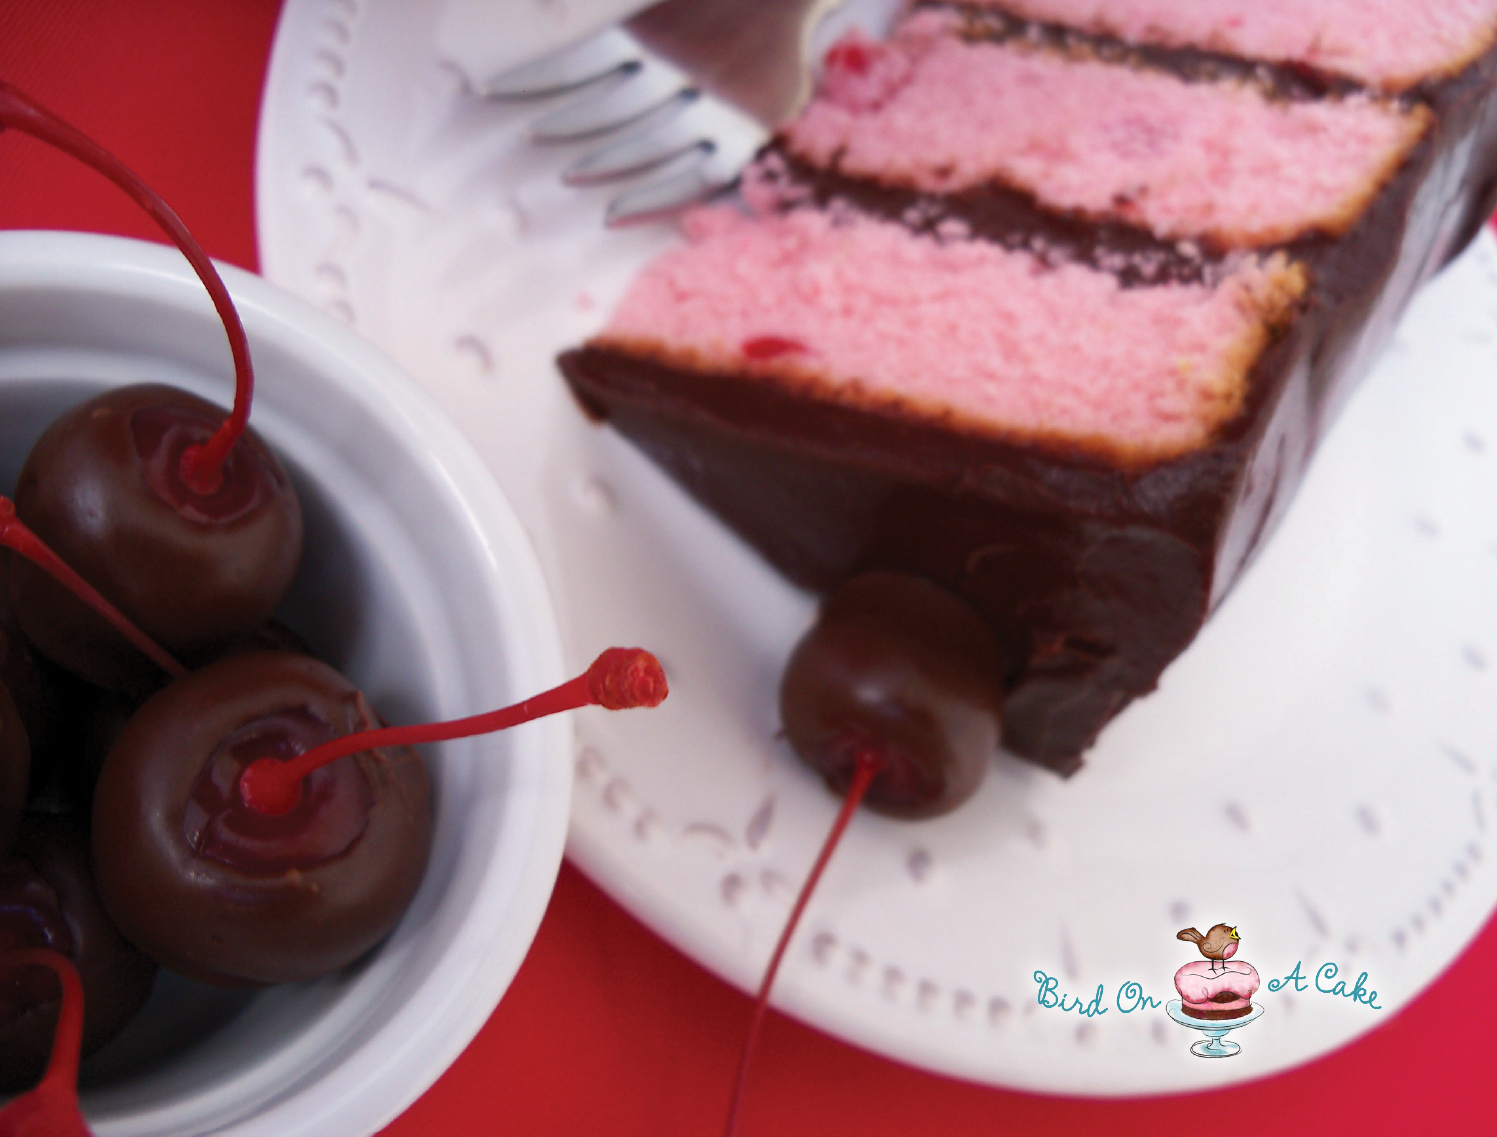 Bird On A Cake: Chocolate Covered Cherry Cake